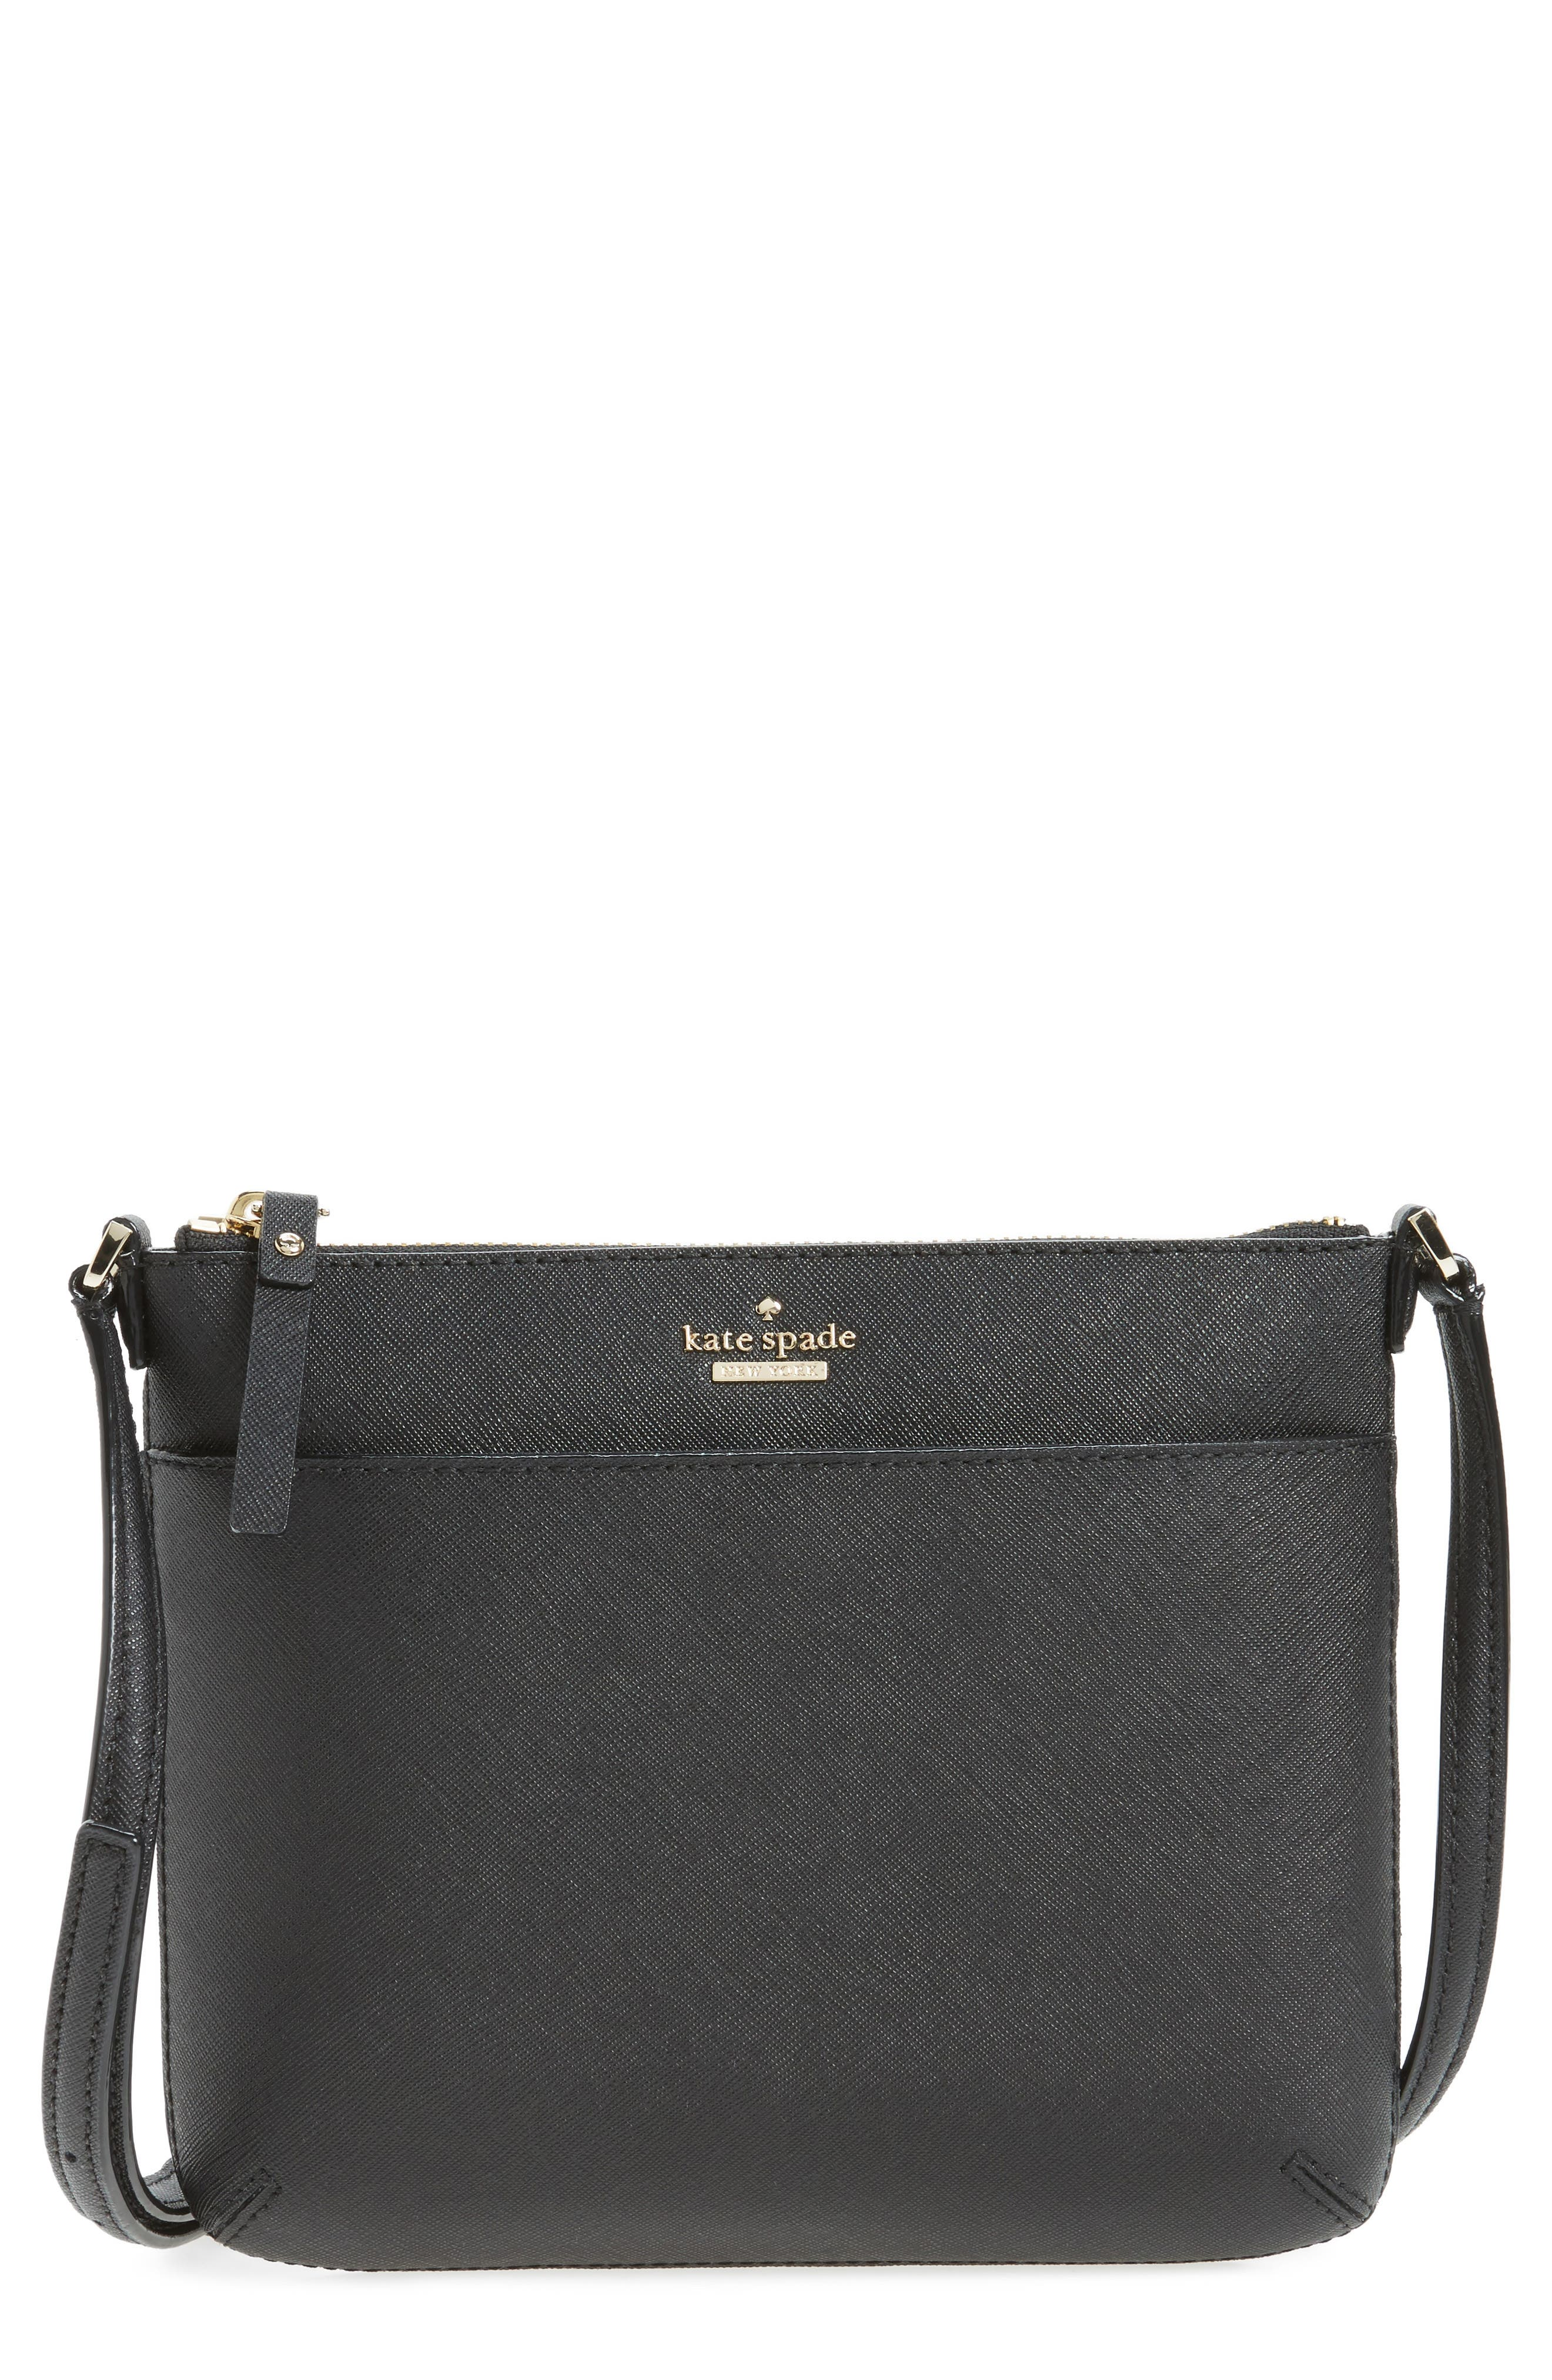 Main Image - kate spade new york cameron street - tenley leather crossbody bag